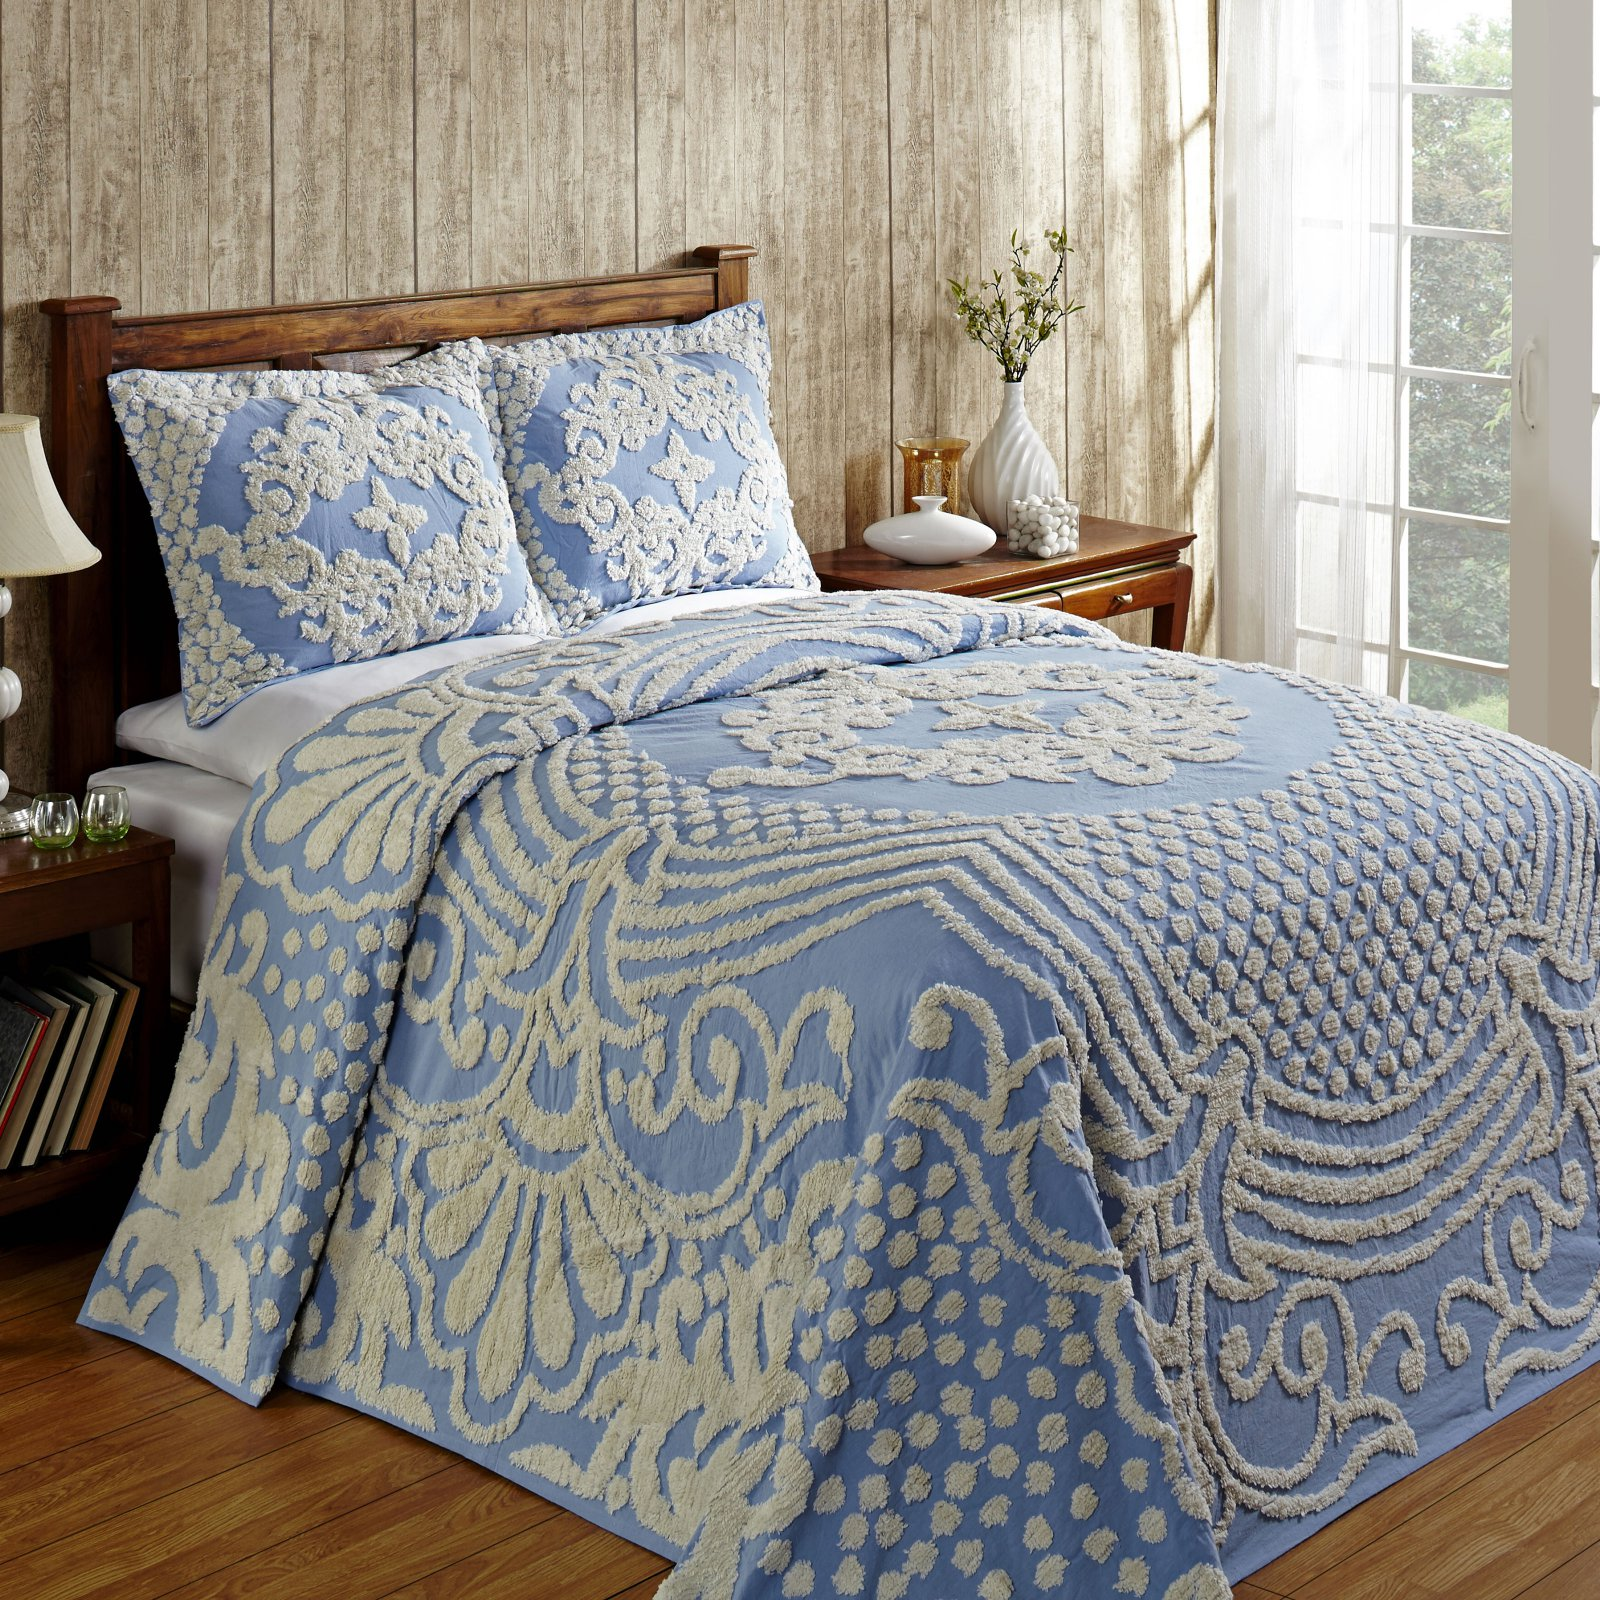 Florence Bedspread Double 96X110 - Blue